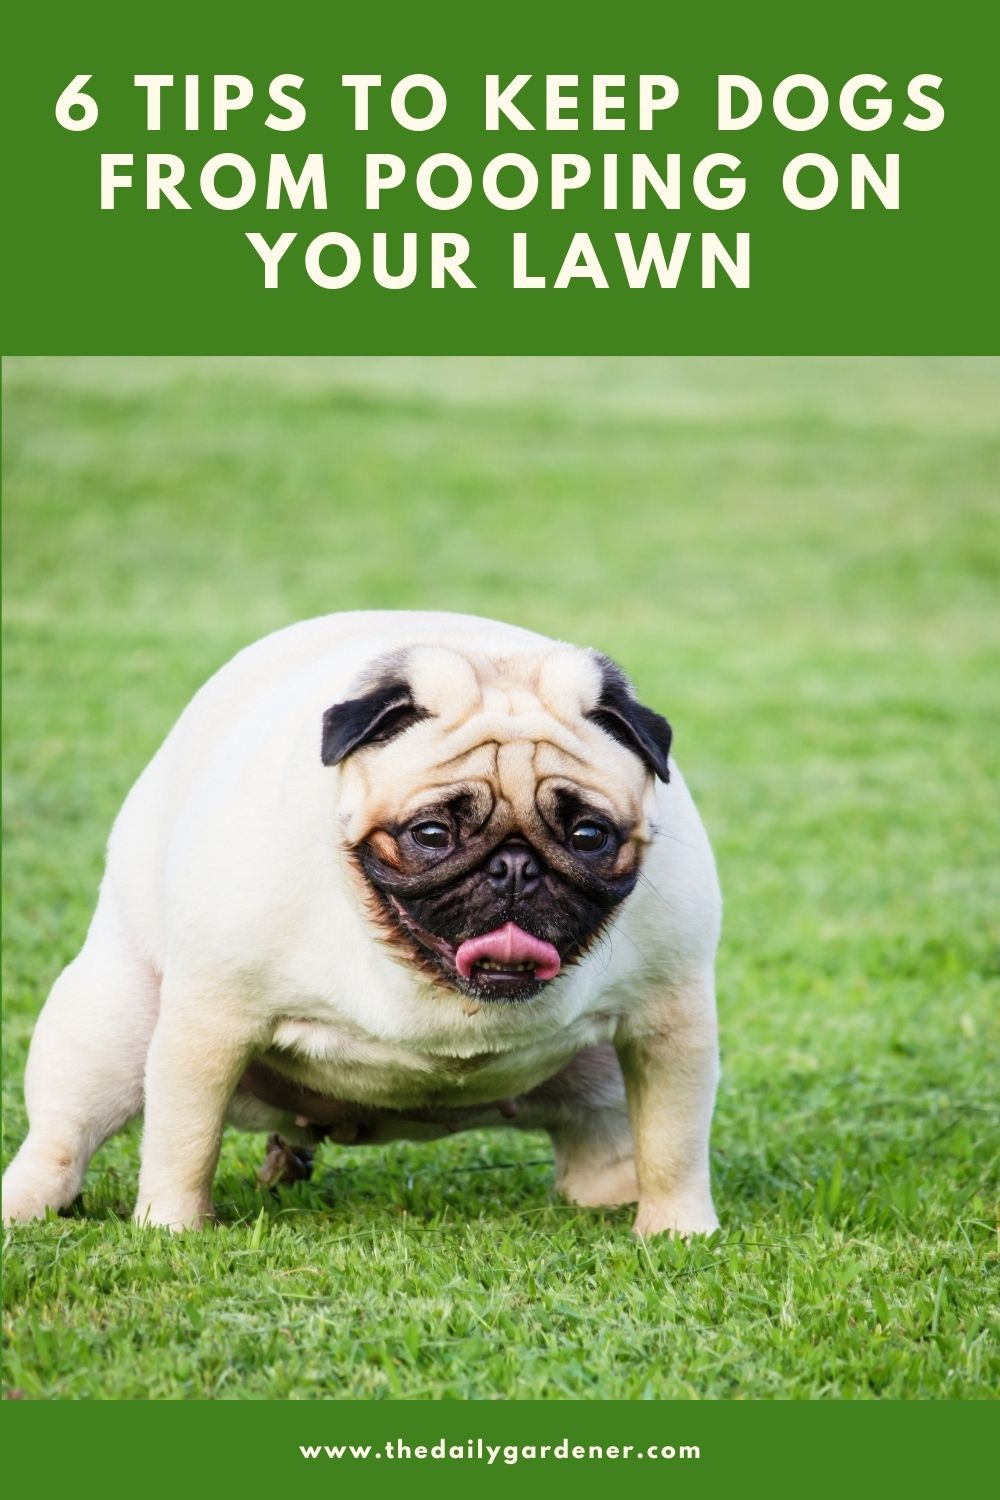 6 Tips to Keep Dogs from Pooping on Your Lawn 1